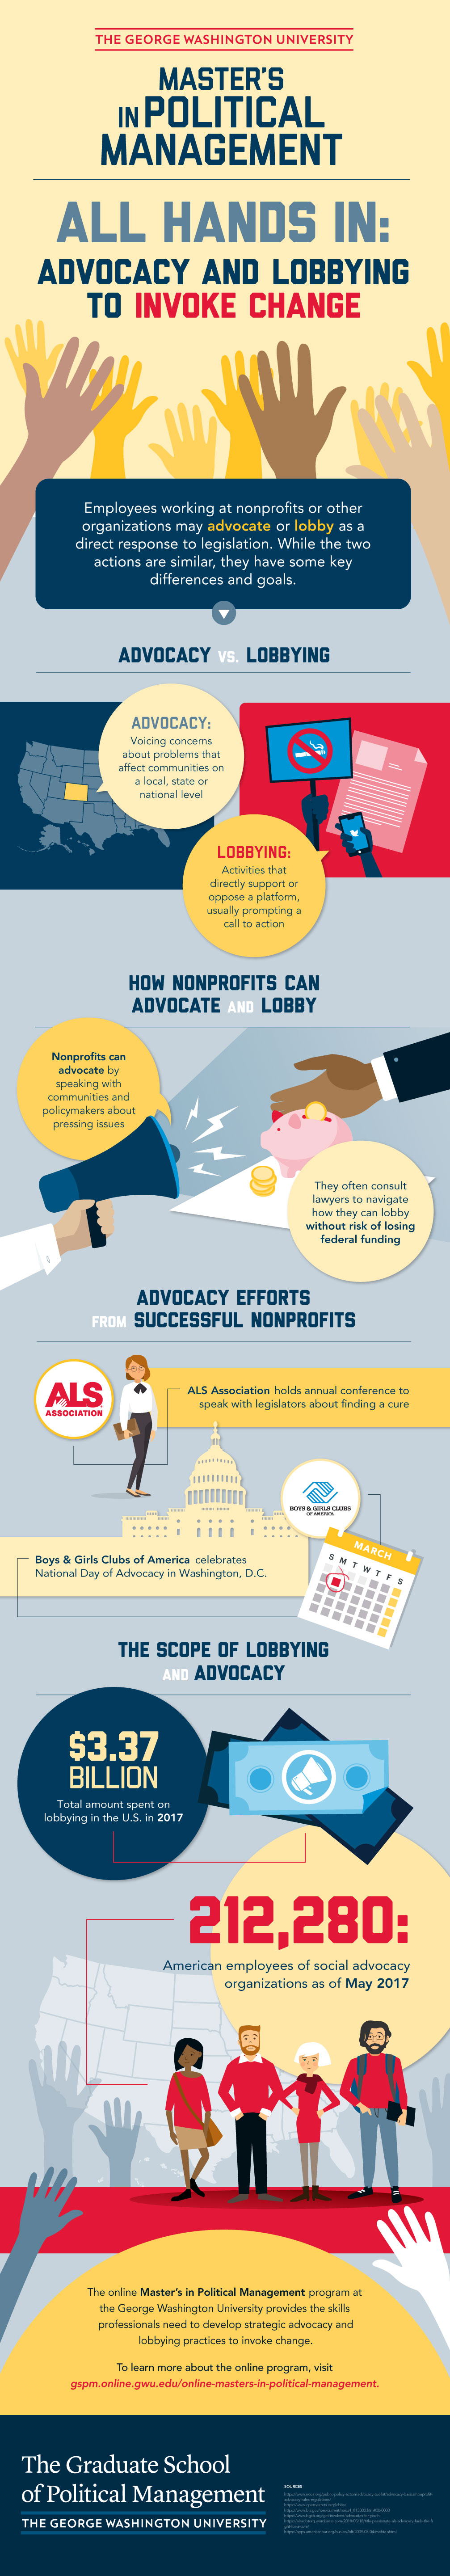 All Hands In: Advocacy and Lobbying to Invoke Change